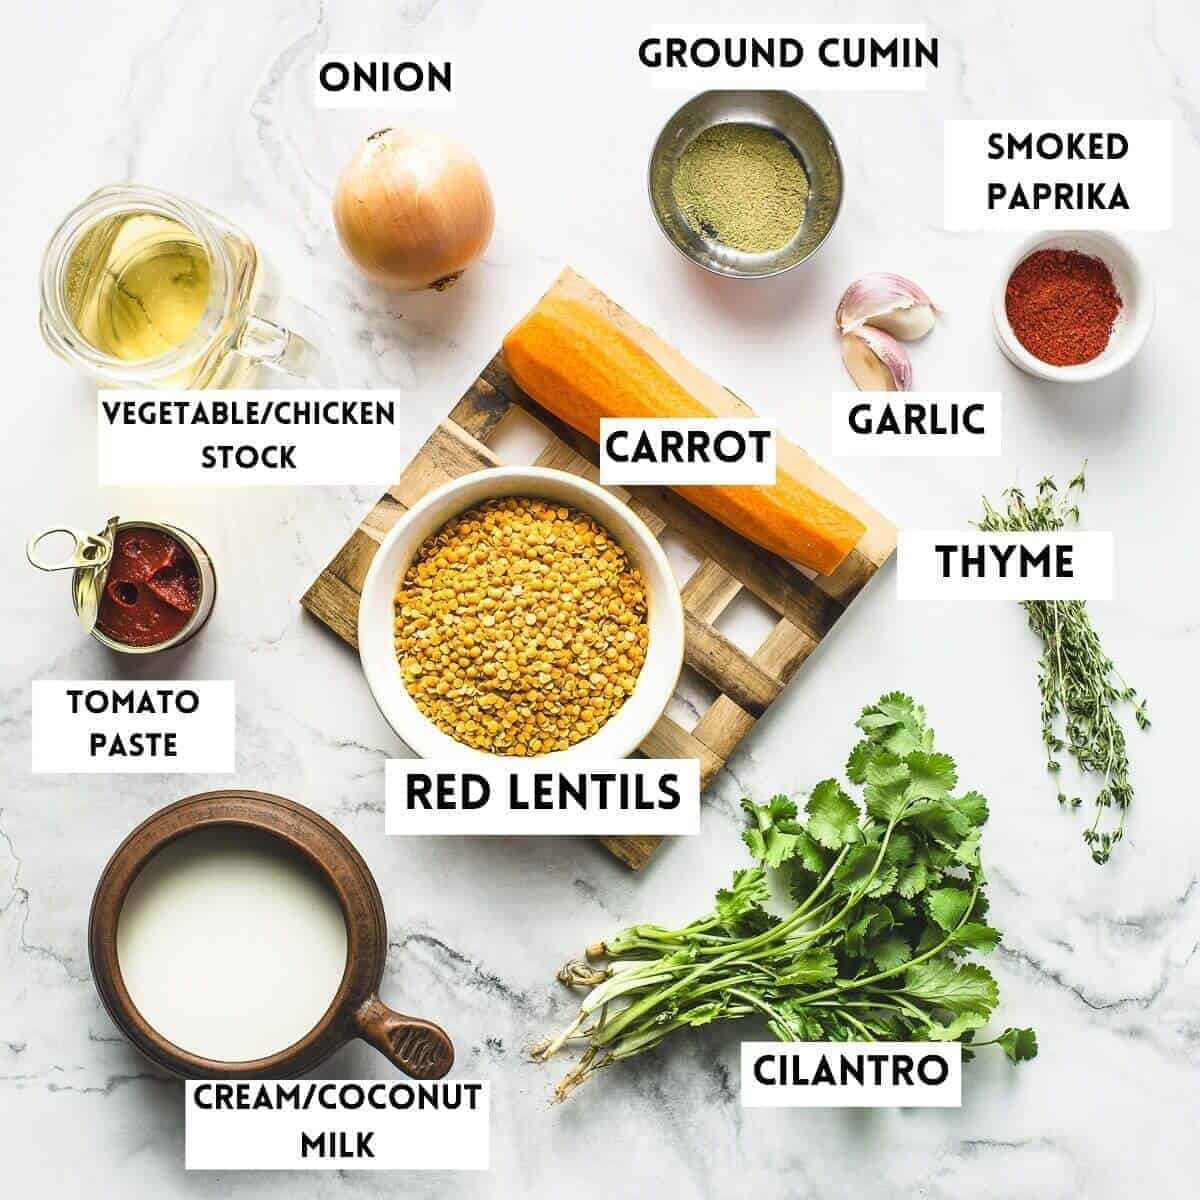 Picture of ingredients needed to cook red lentil soup. Carrot, onion, cilantro, thyme, cream, tomato paste, stock, garlic, spices